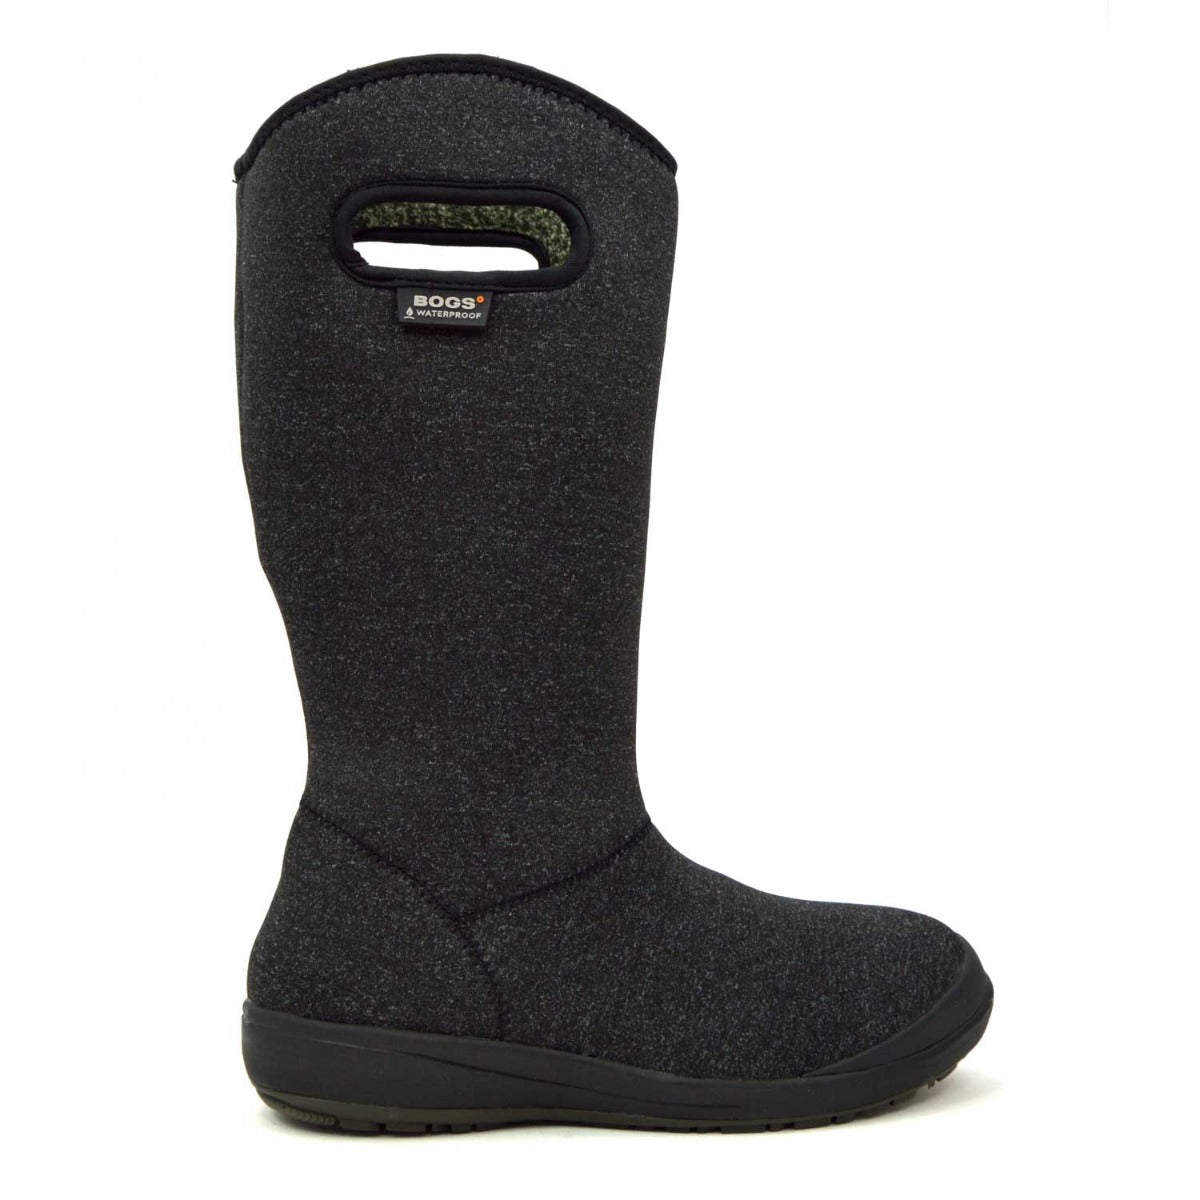 Charlie Black Wellies